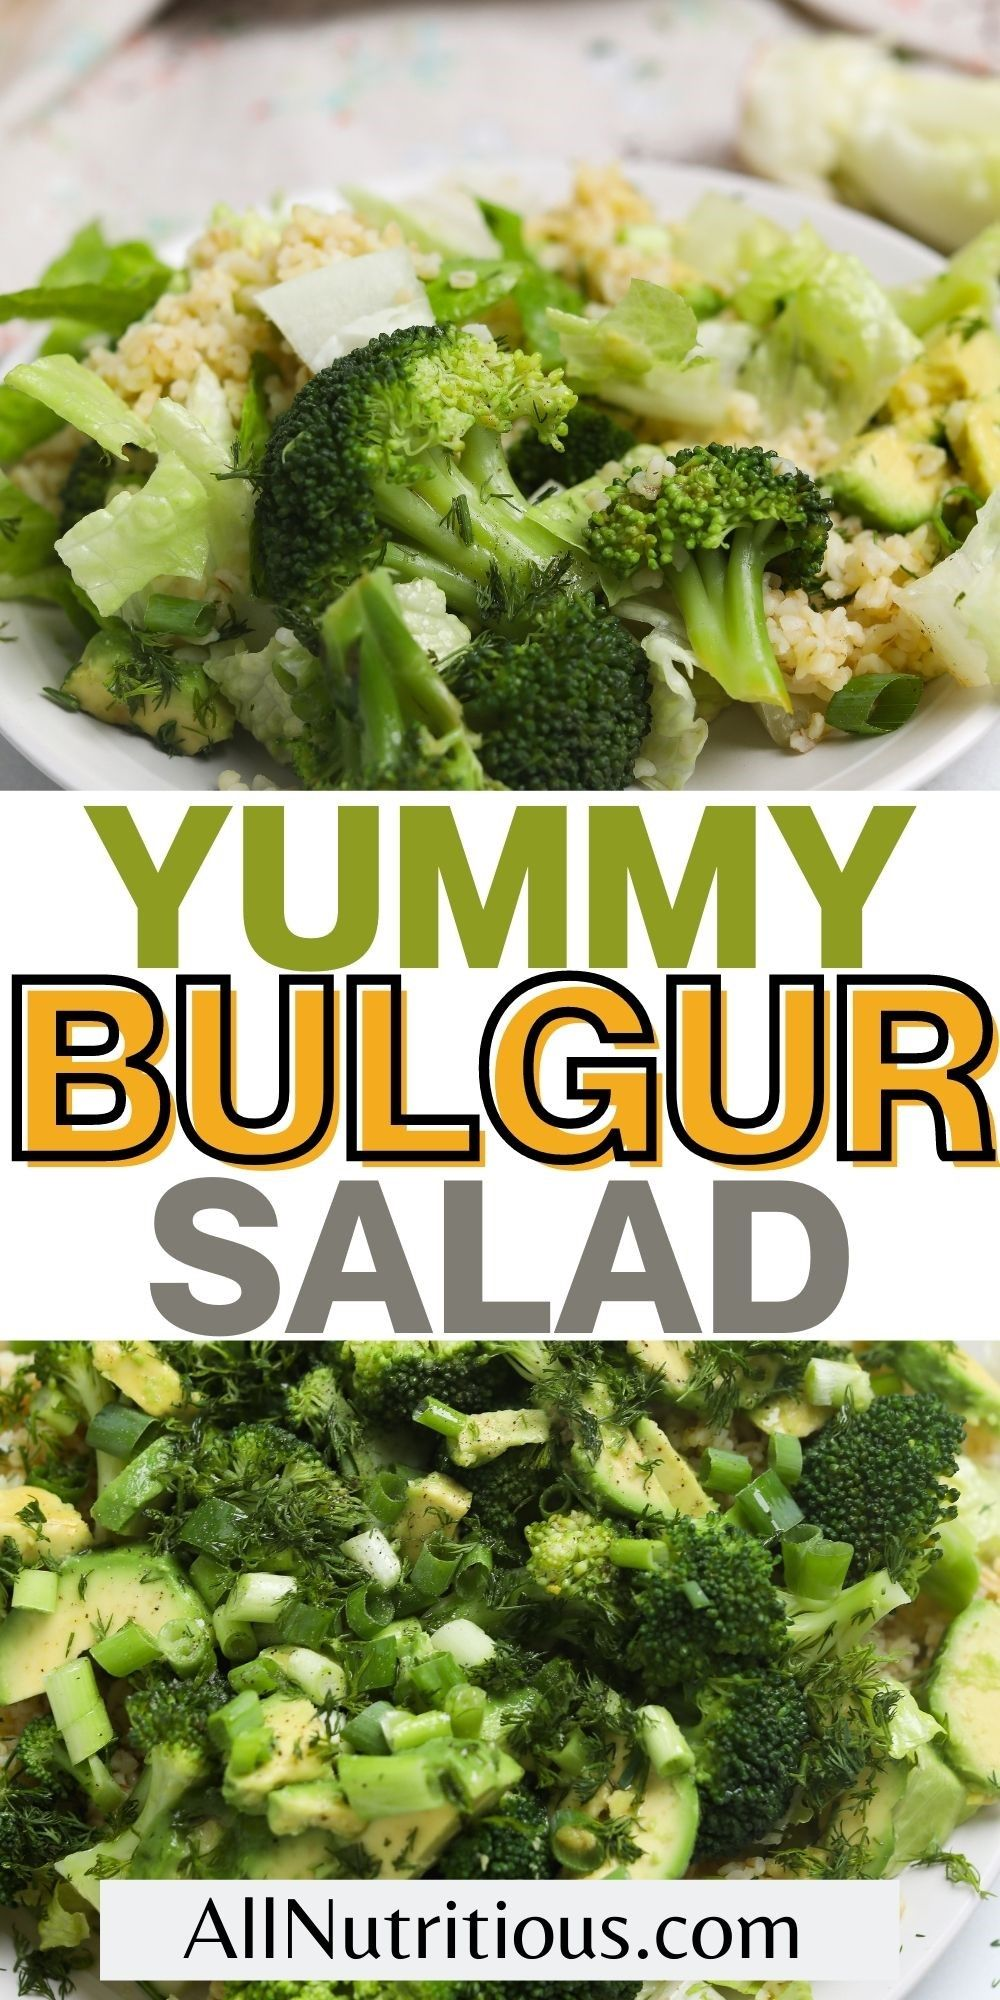 yummy bulgur salad